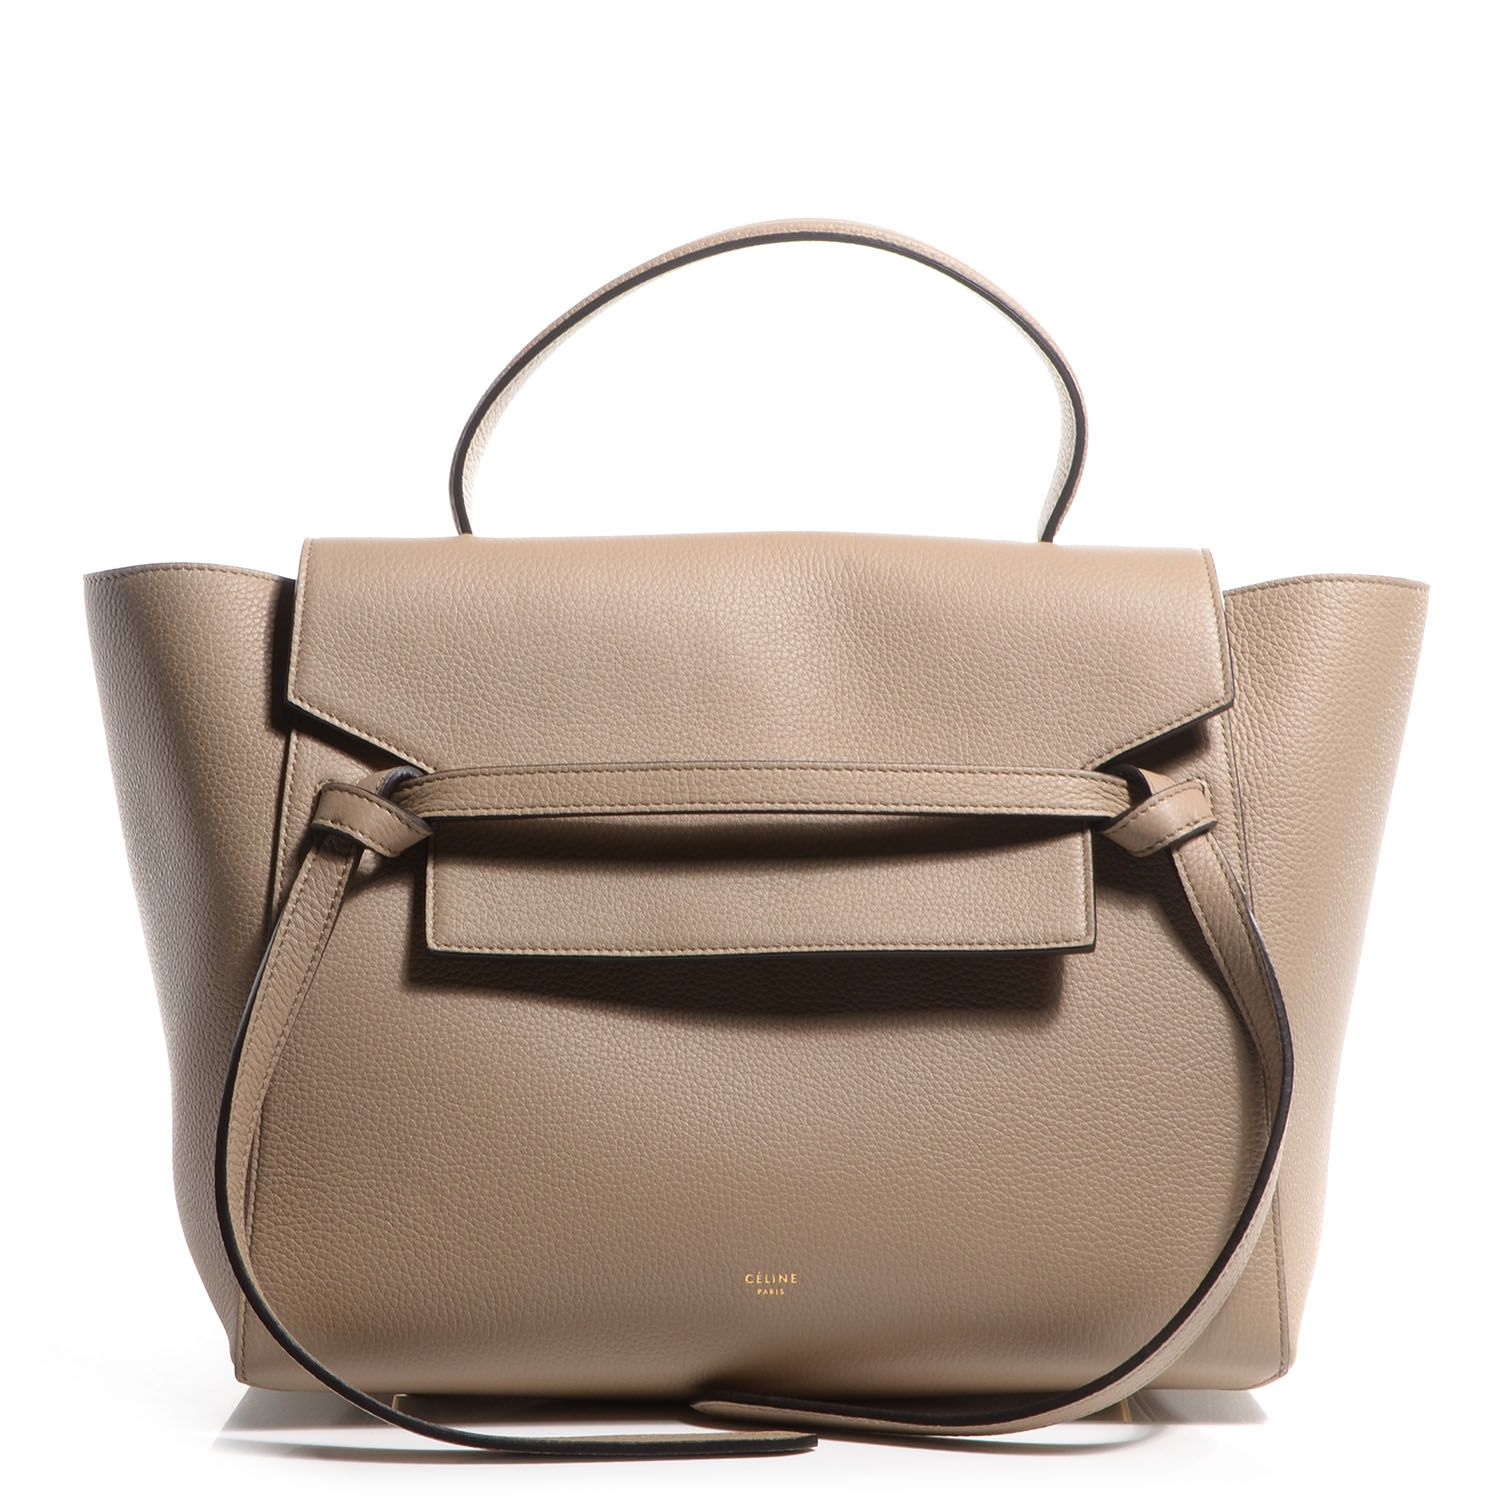 4ac993adda4 This is an authentic CELINE Drummed Calfskin Mini Belt Bag in Dune. This  chic tote